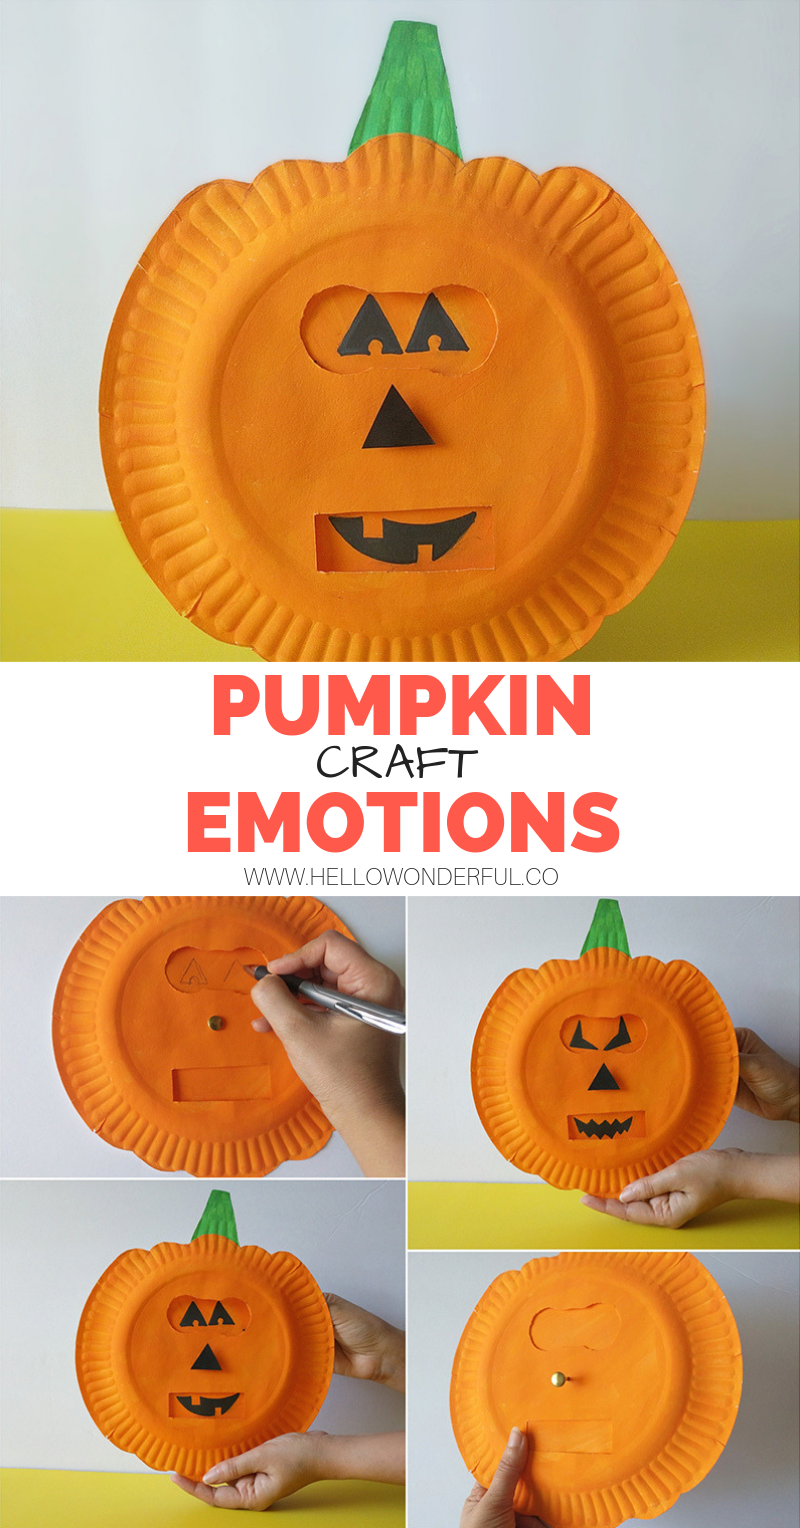 PUMPKIN EMOTIONS CRAFT #911craftsfortoddlers Pumpkin Emotions Craft. Get your kids to talk about their feelings with this fun pumpkin face changing paper plate craft! #kidscraft #kidsart #halloweencraft #pumpkincraft #pumpkinart #pumpkinactivities #911craftsfortoddlers